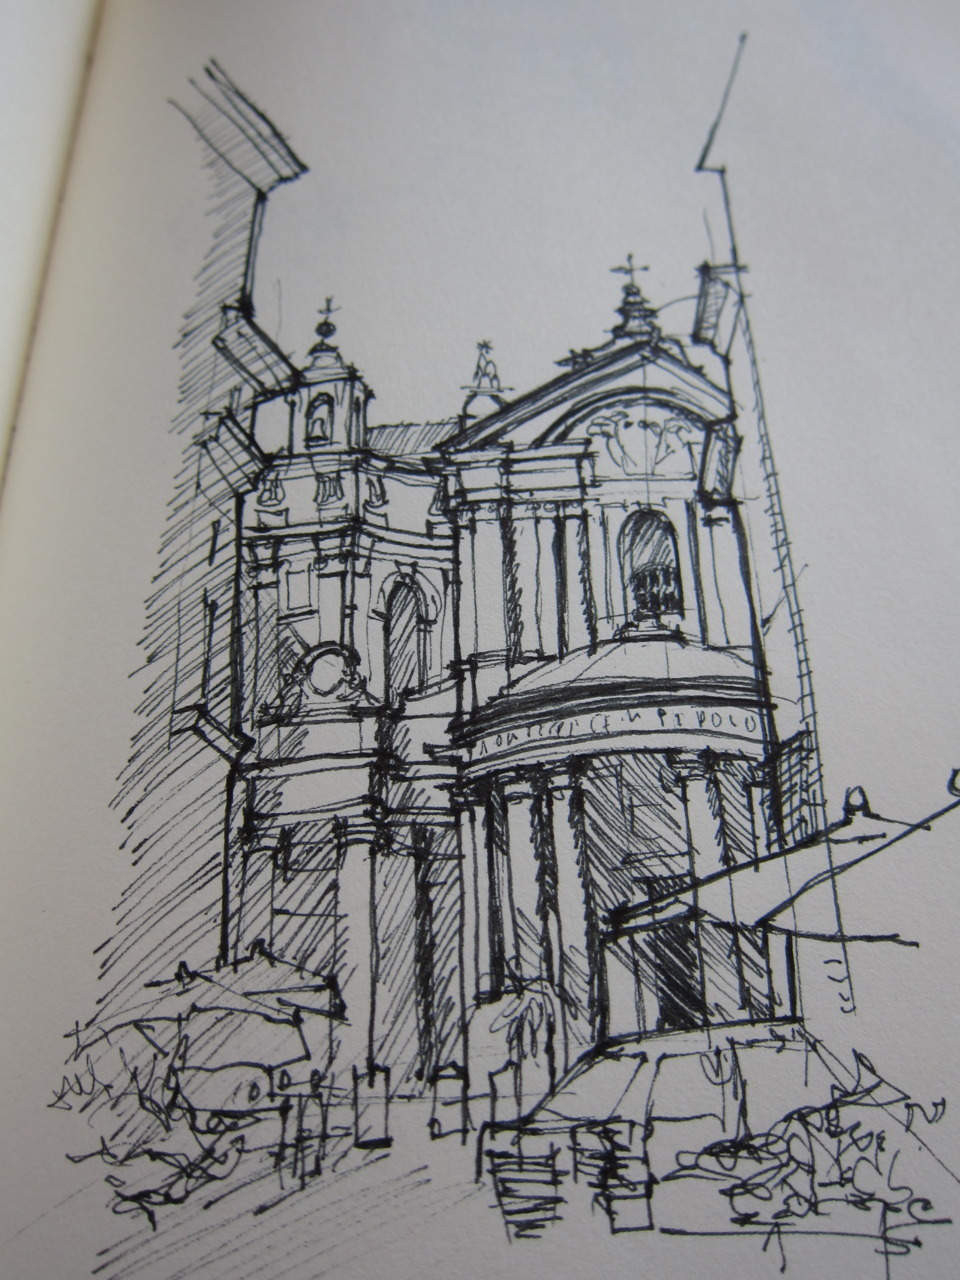 Quick sketch of Santa Maria della Pace - one of the premier Urban Stages created during the Baroque epoch in Rome.